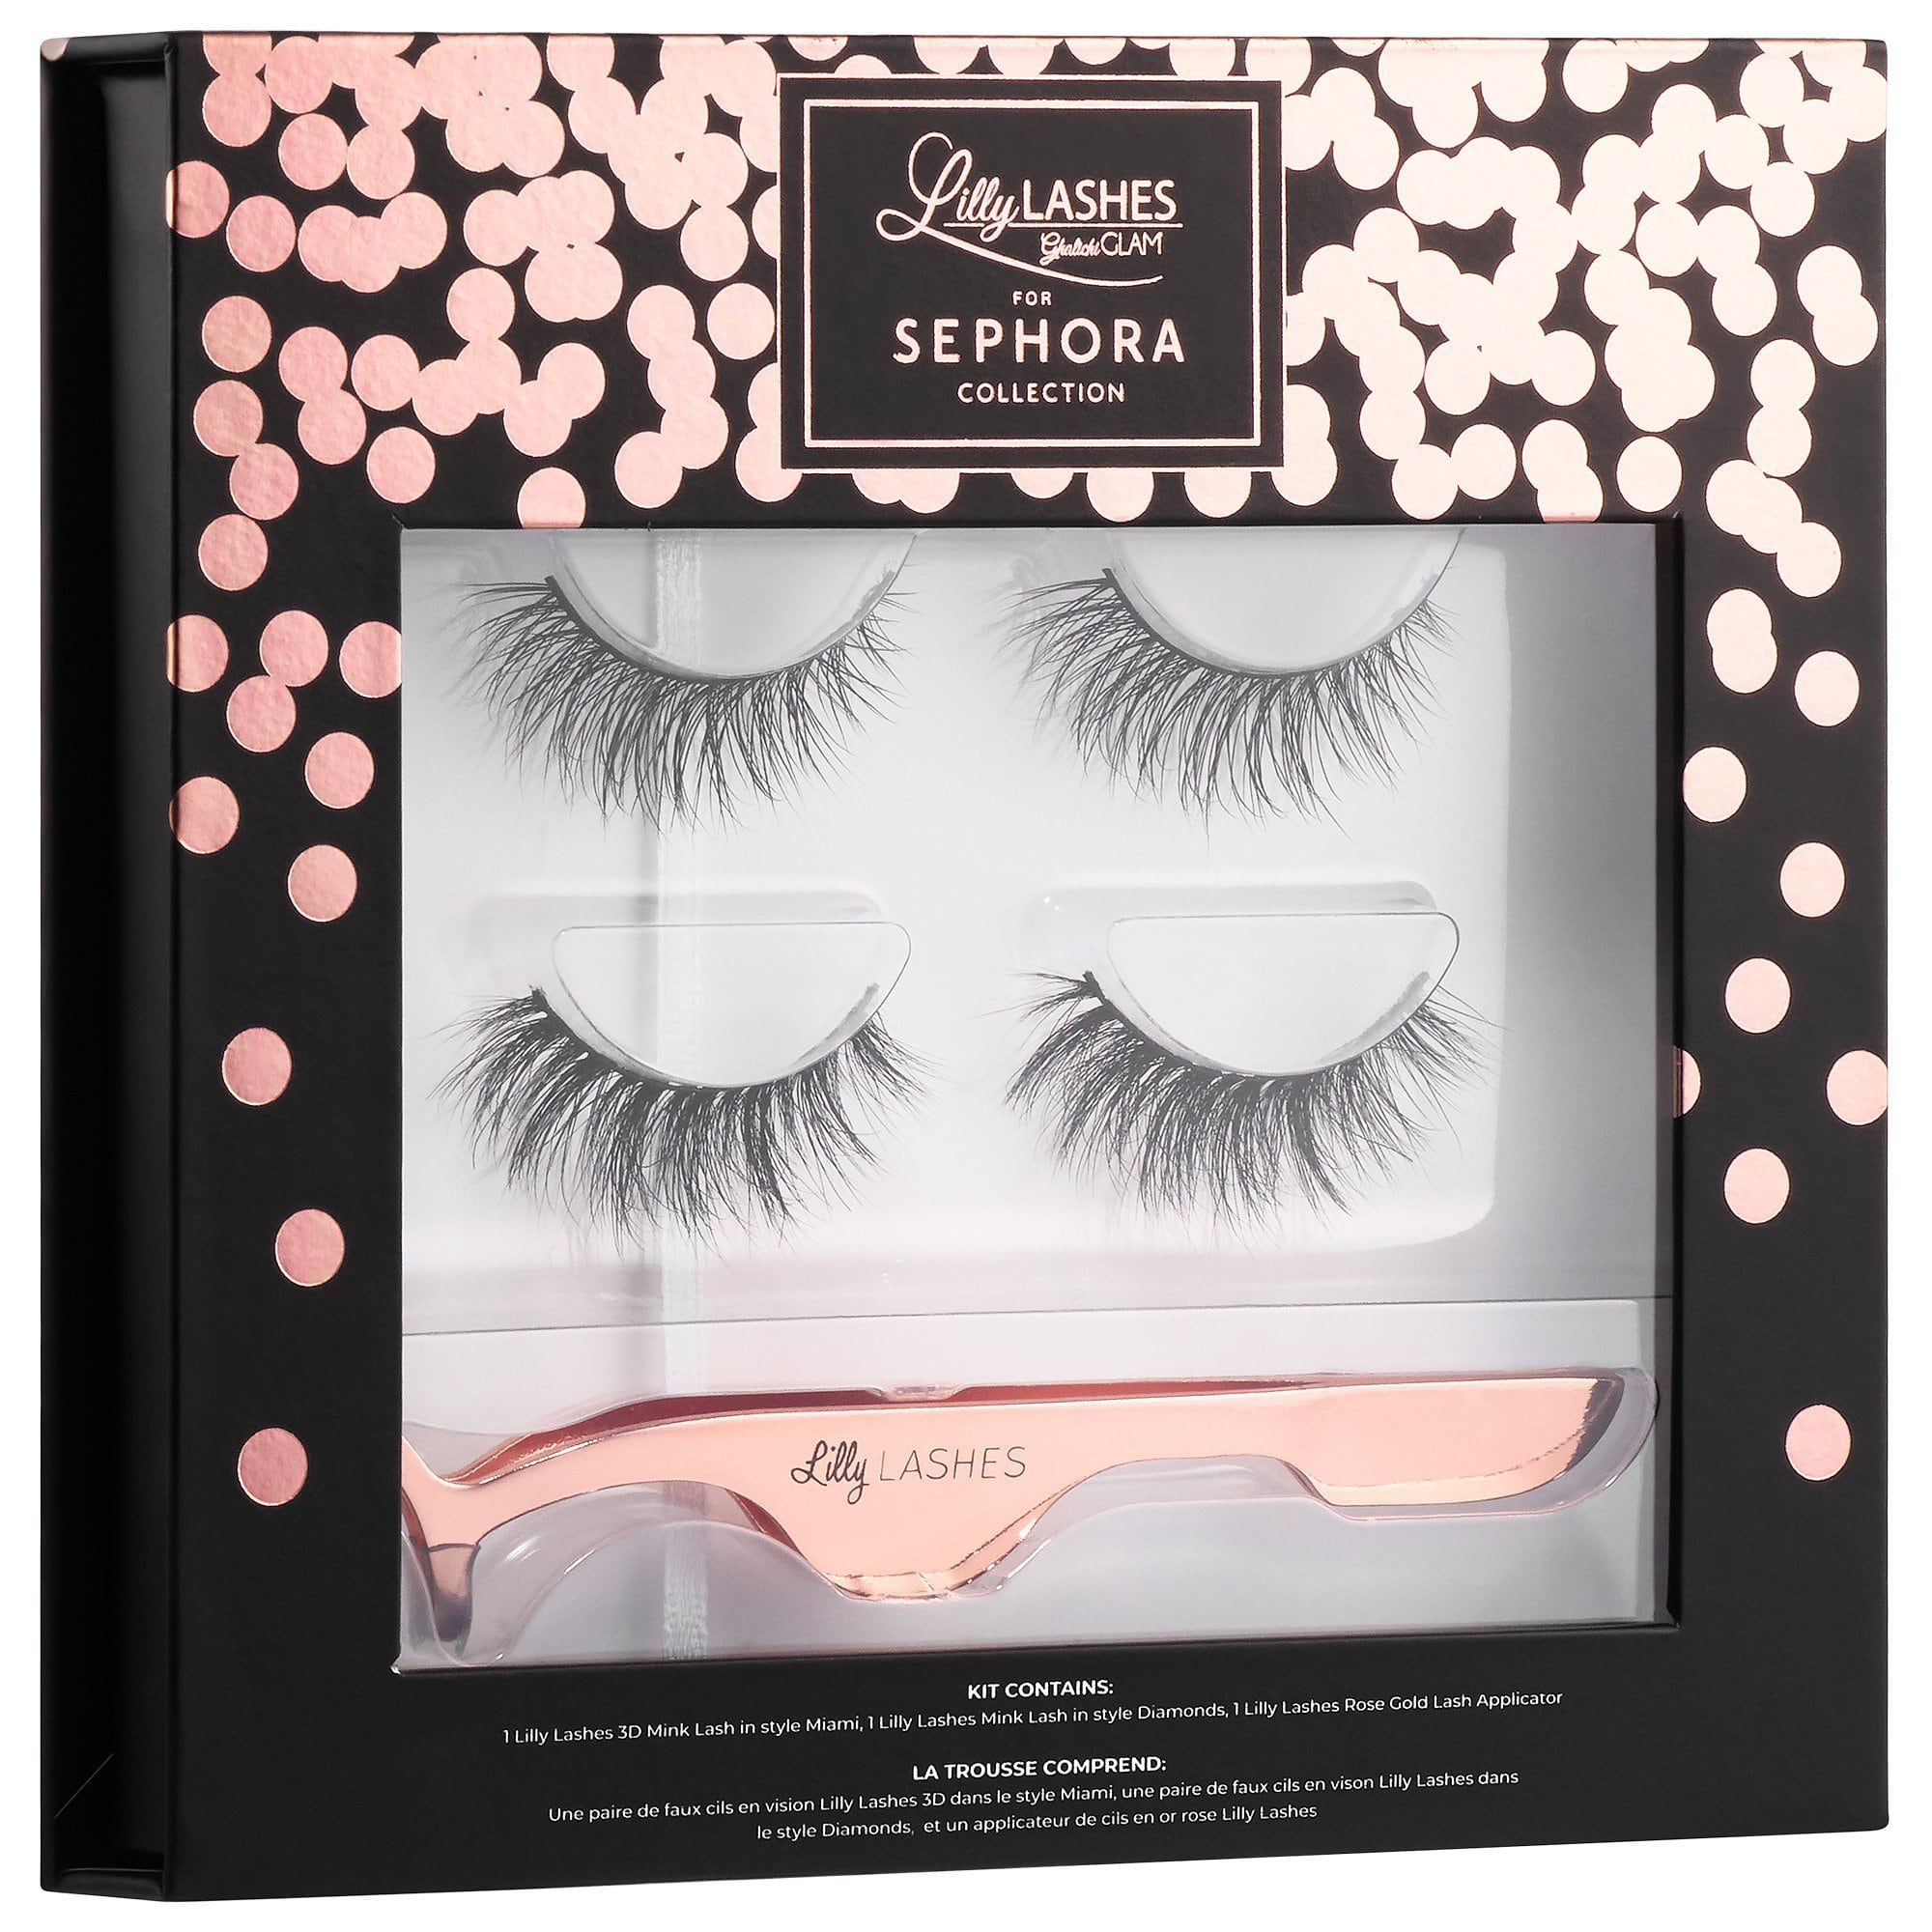 916c1aeb6f3 Sephora Collection Lilly Lashes for Sephora Collection Lash Set ...